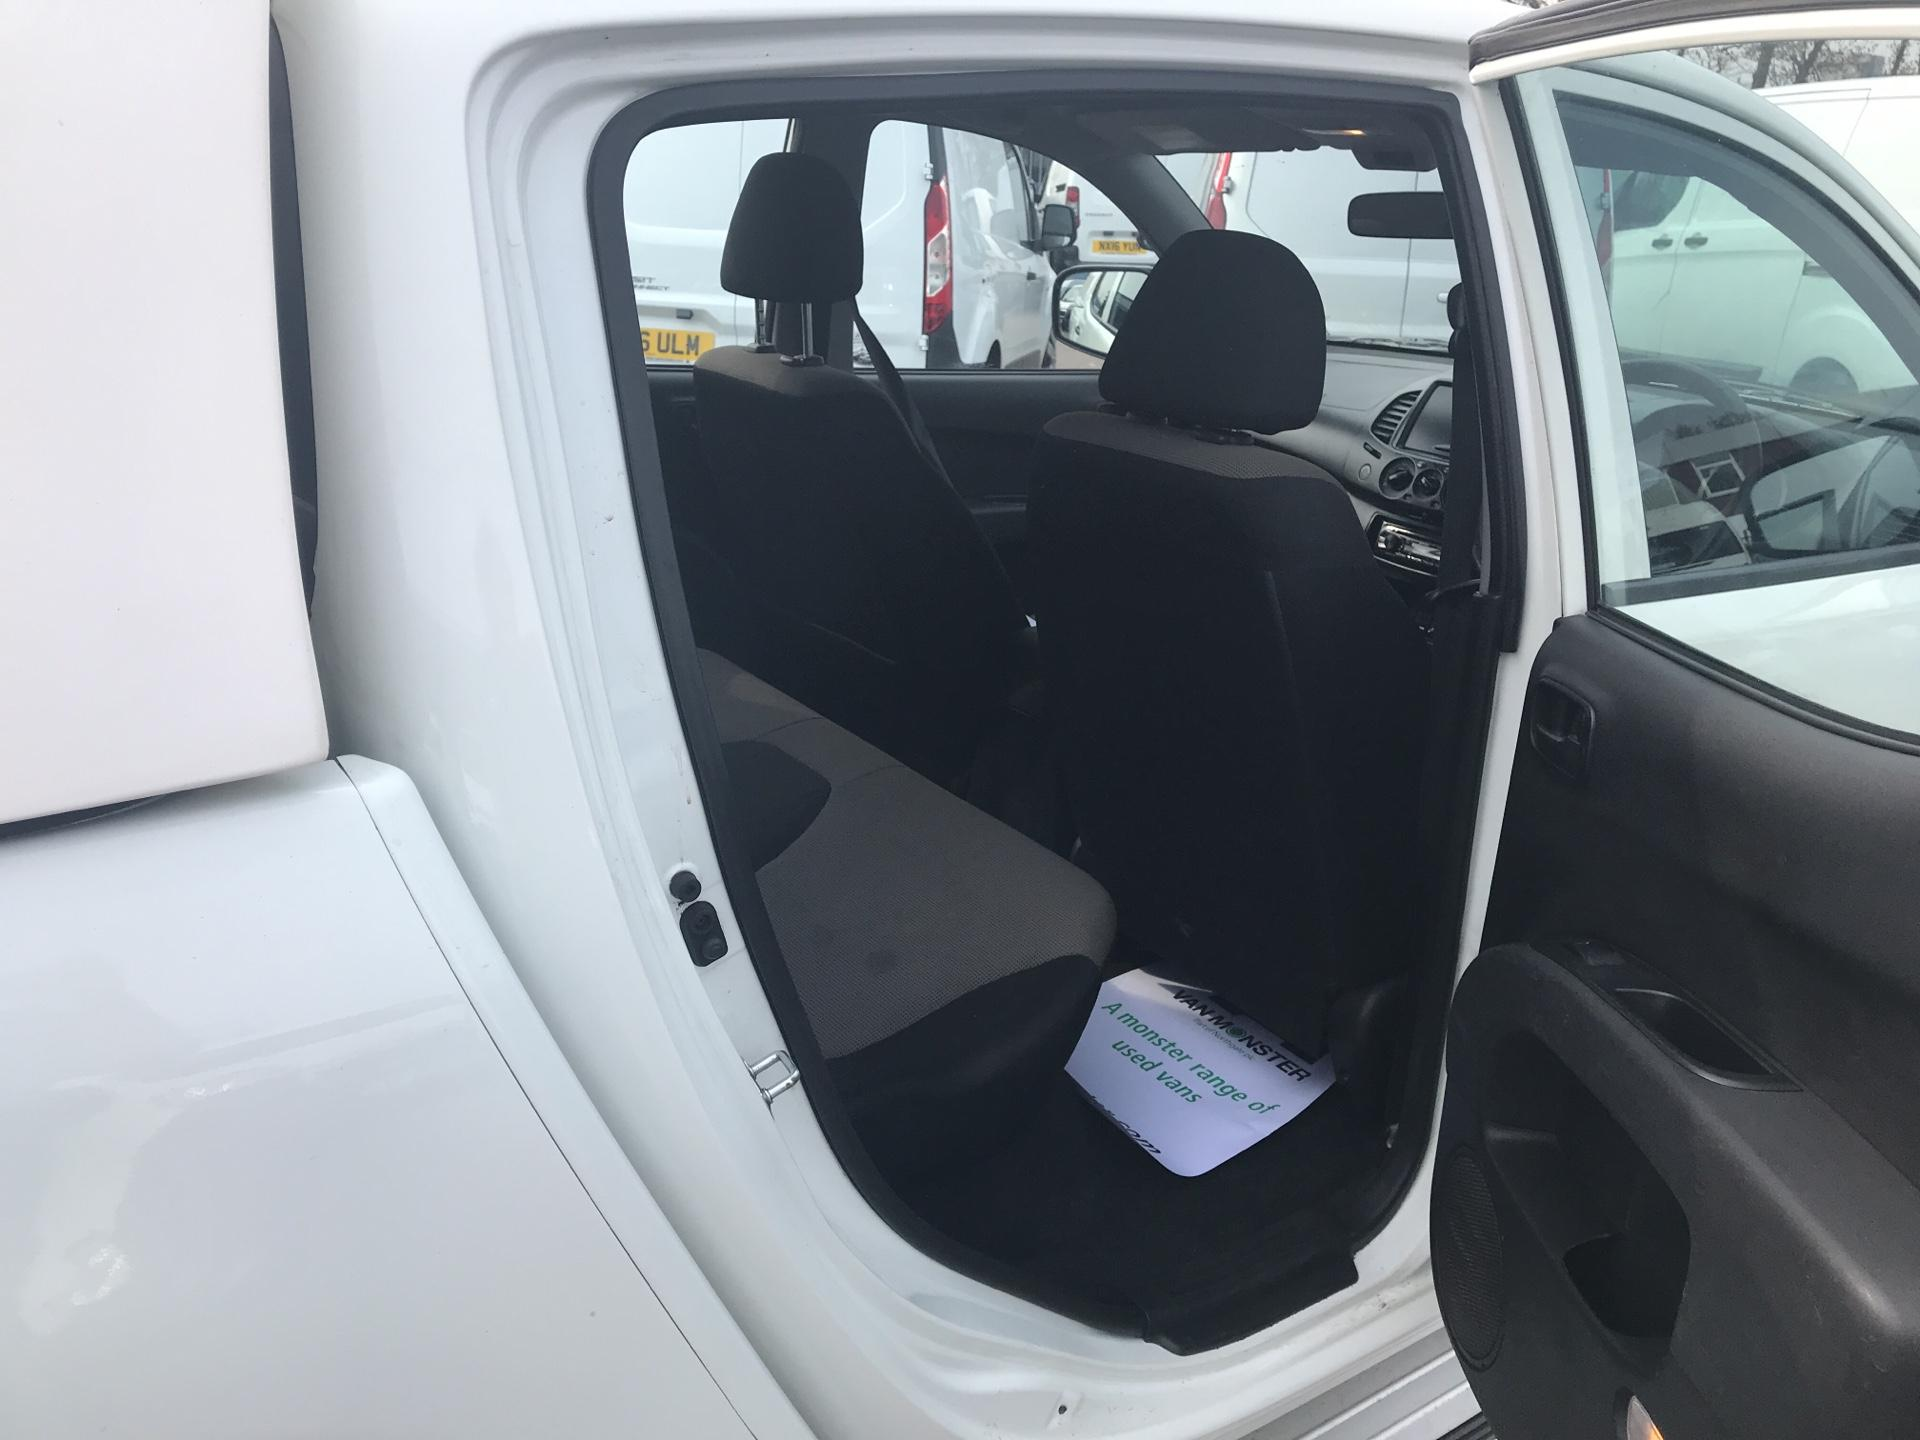 2015 Mitsubishi L200 Double Cab Di-D 4Life 4Wd 134Bhp *VALUE RANGE VEHICLE CONDITION REFLECTED IN PRICE* (DY65XLH) Image 19